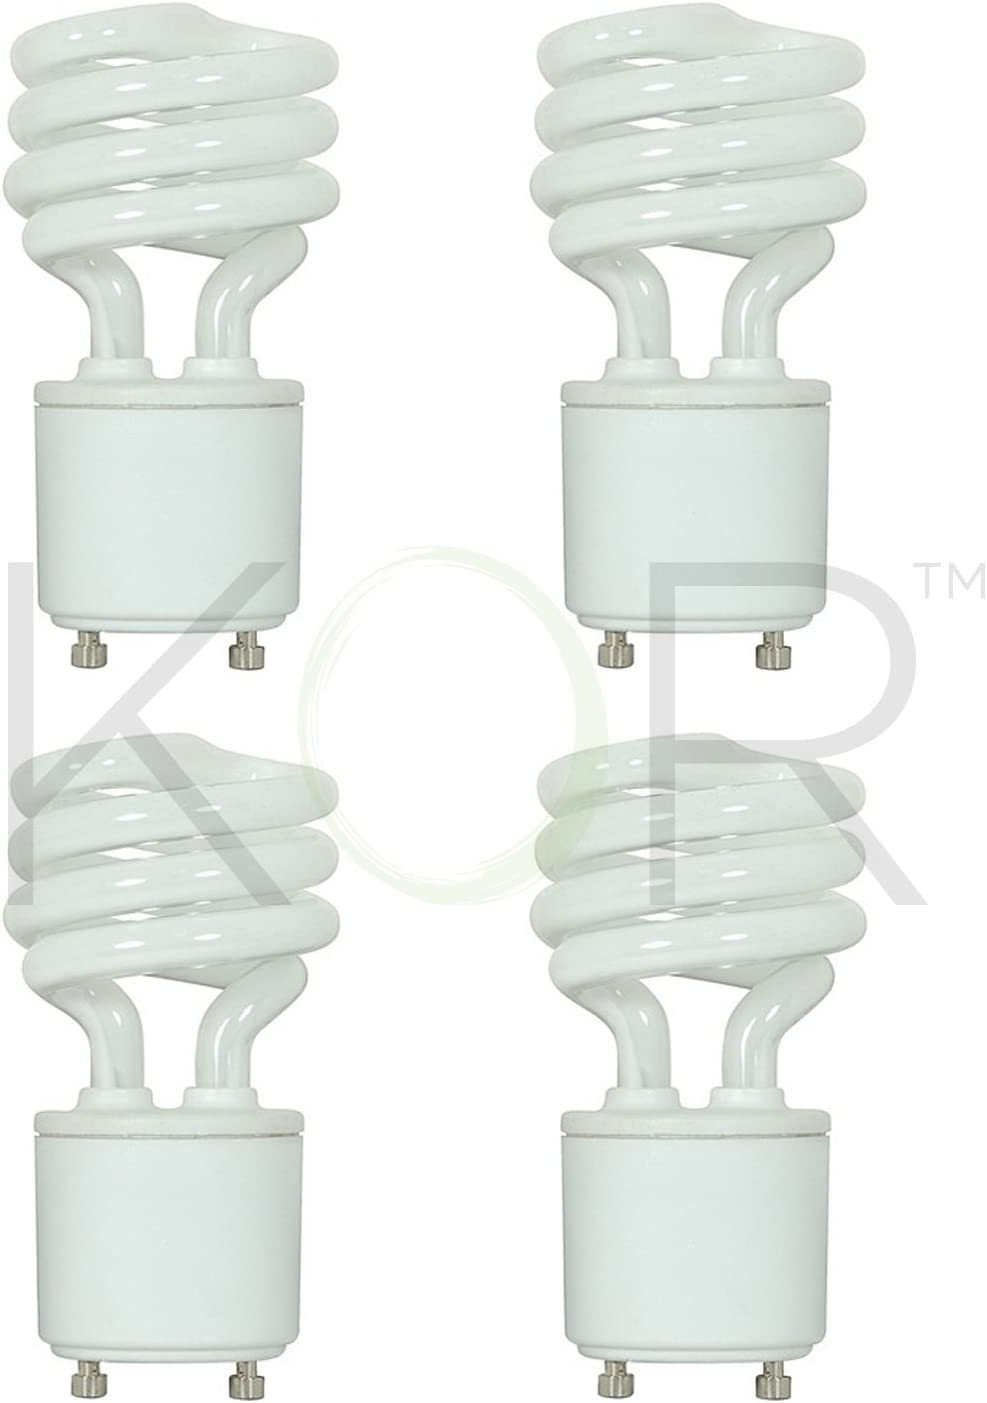 (4 Pack) 13 Watt Mini Spiral - GU24 Base - (60W Equivalent) - T2 Mini-Twist - CFL Light Bulb (Cool White (4100K), CFL)